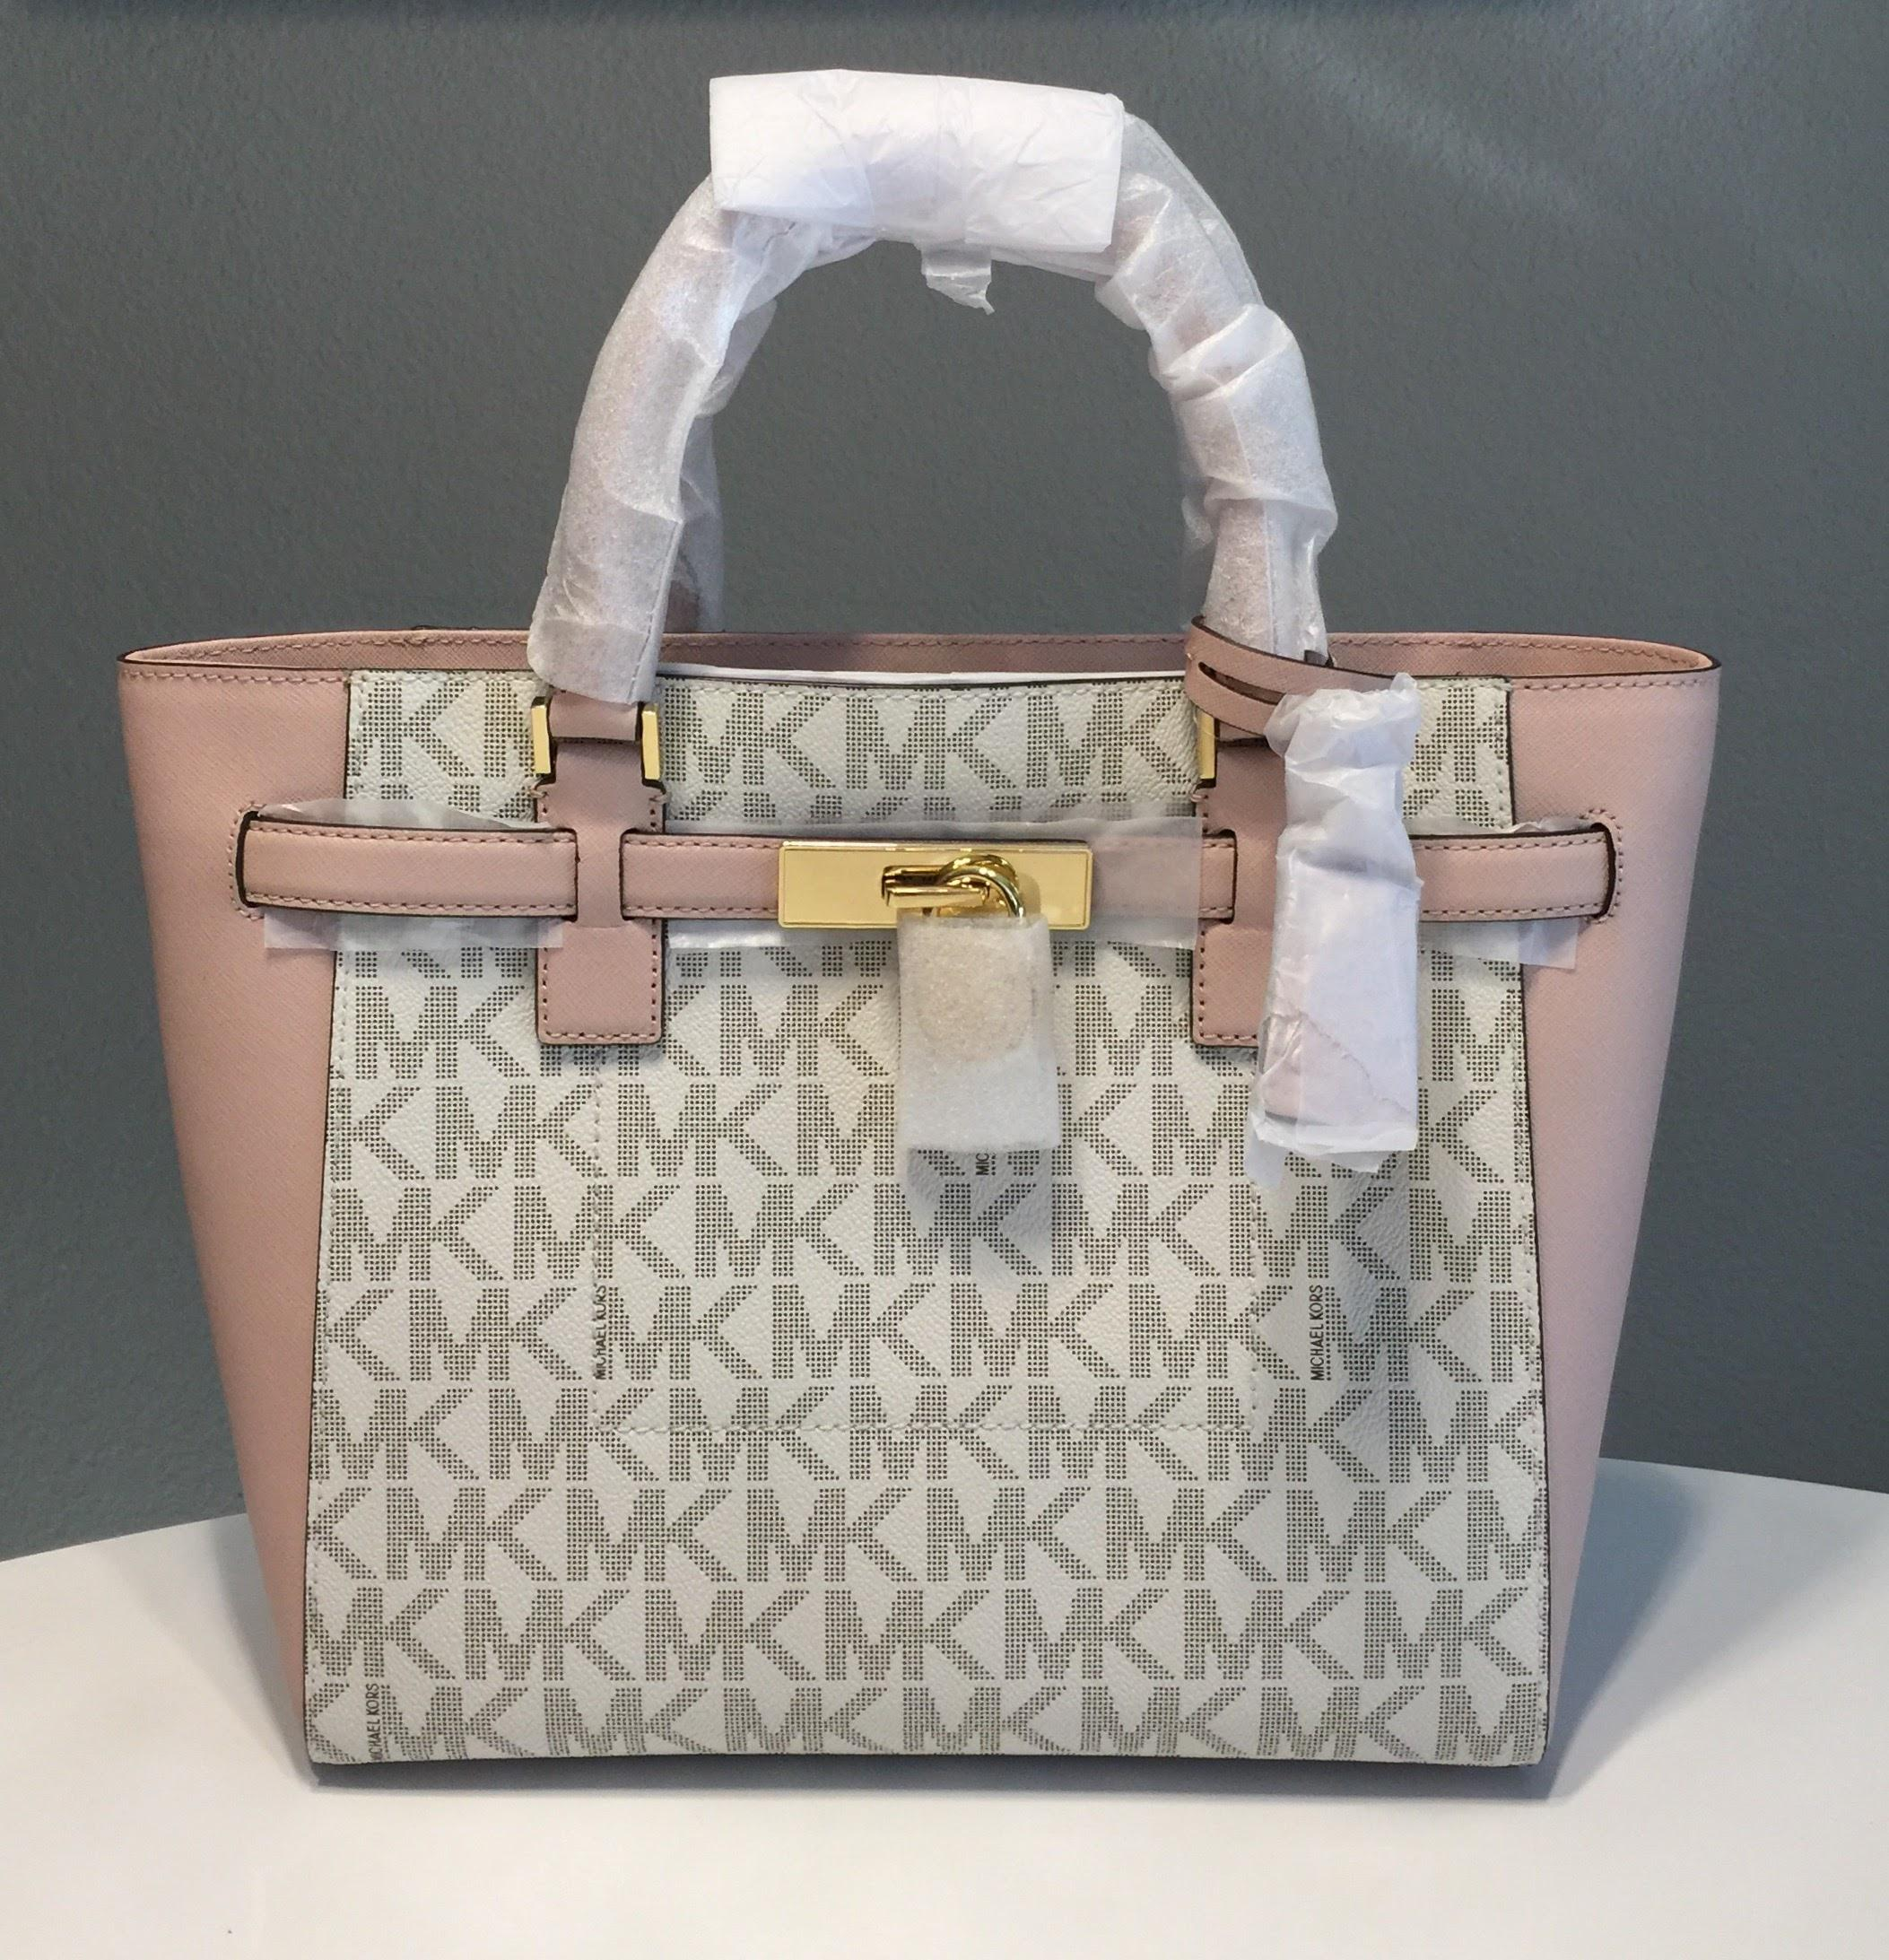 a2f7d5f41c35 ... italy michael kors handbag handbag set matching hamilton travel satchel  in vanilla and ballet pink.